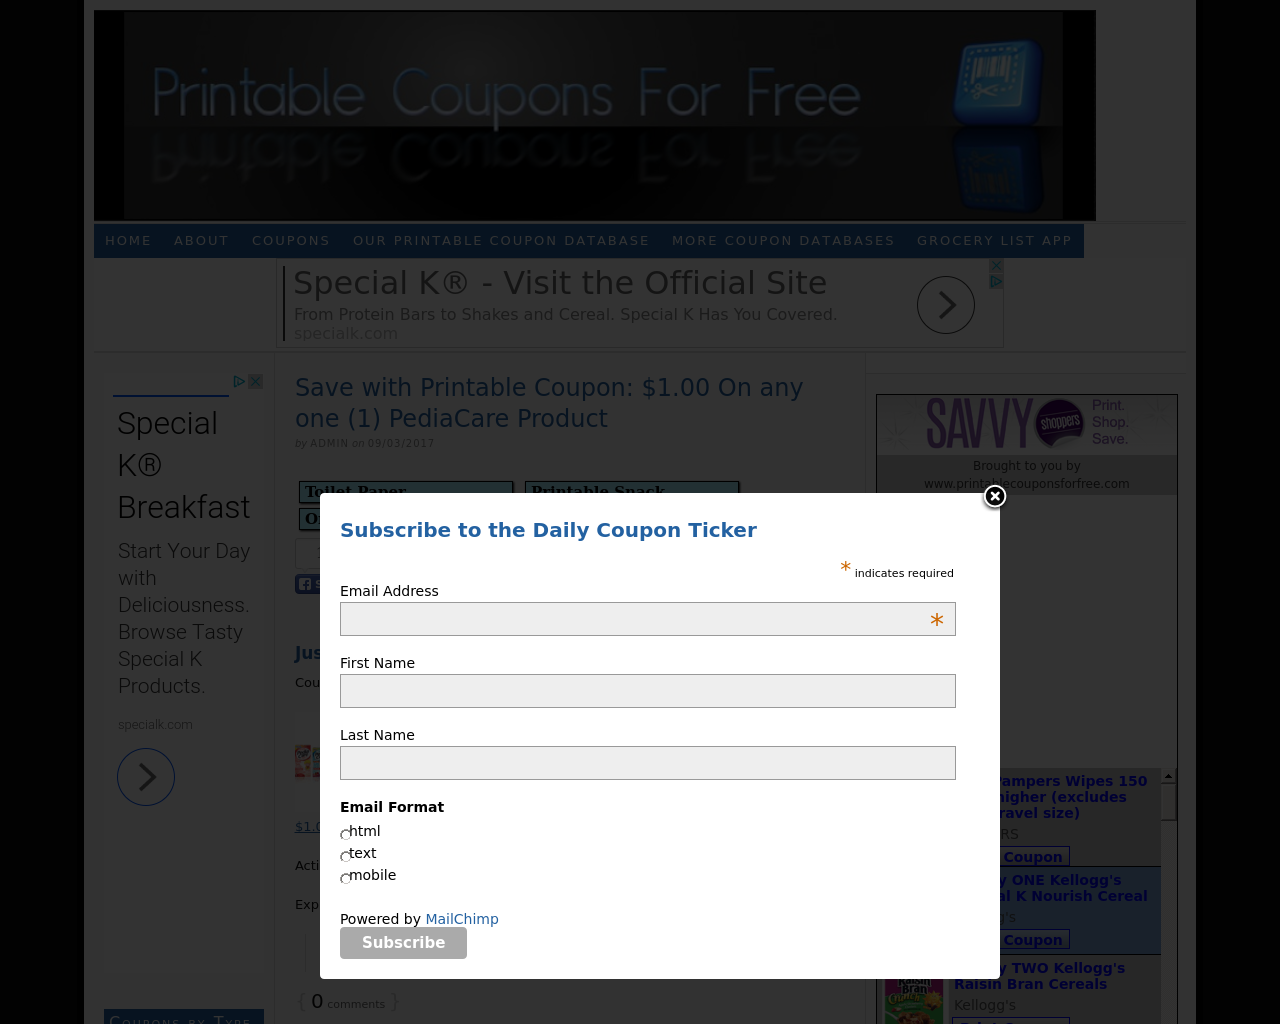 Printable-Coupons-For-Free-Advertising-Reviews-Pricing